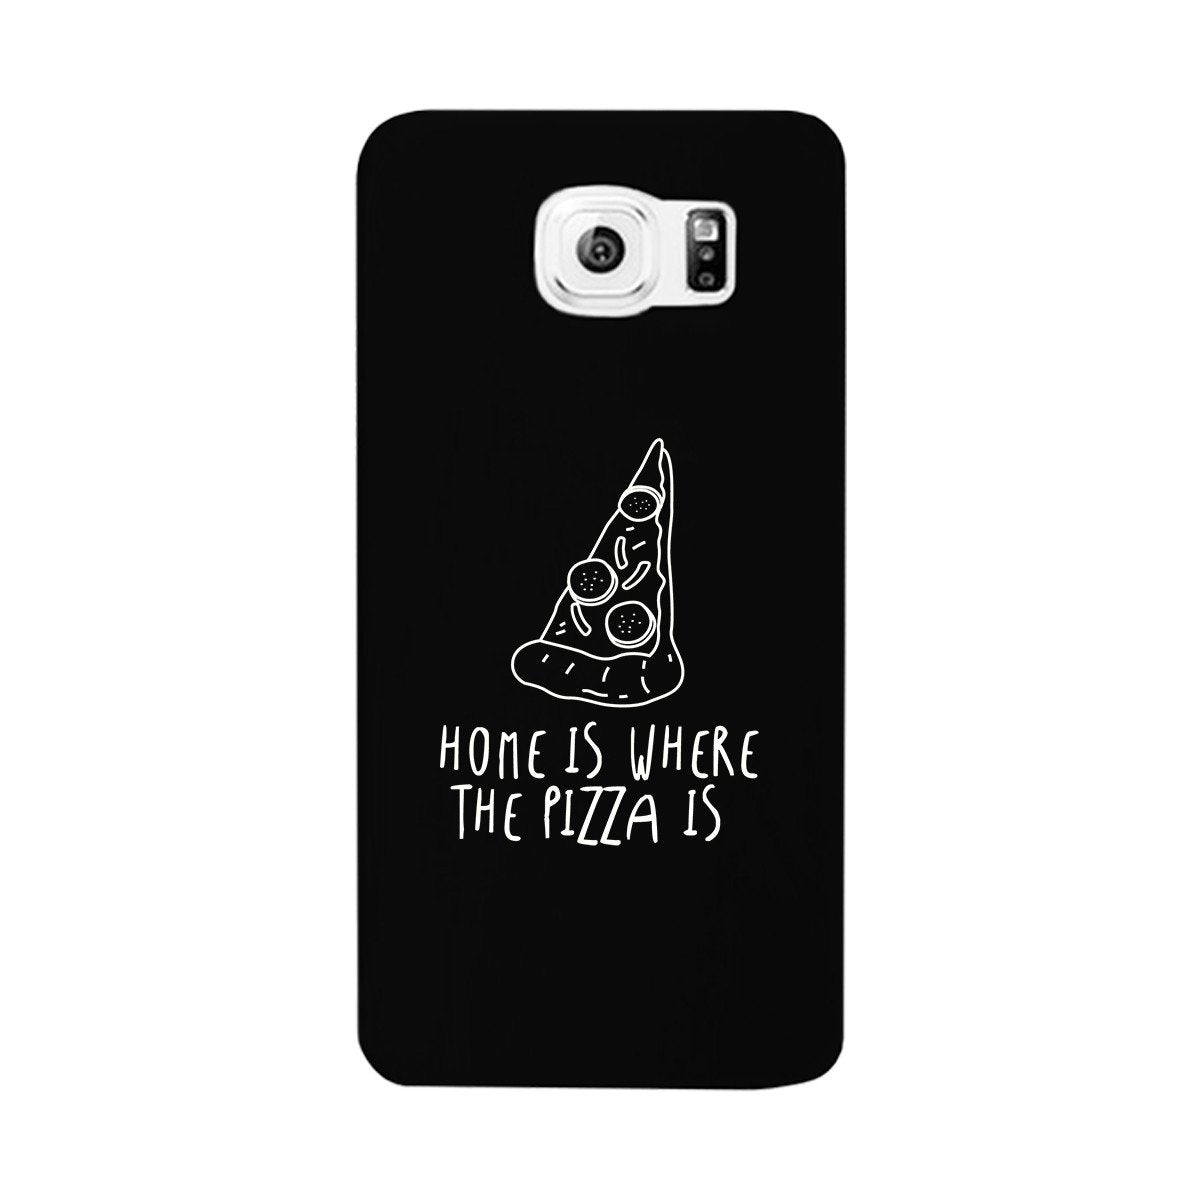 Home Where Pizza Black Ultra Slim Phone Cases For Apple, Samsung Galaxy, LG, HTC